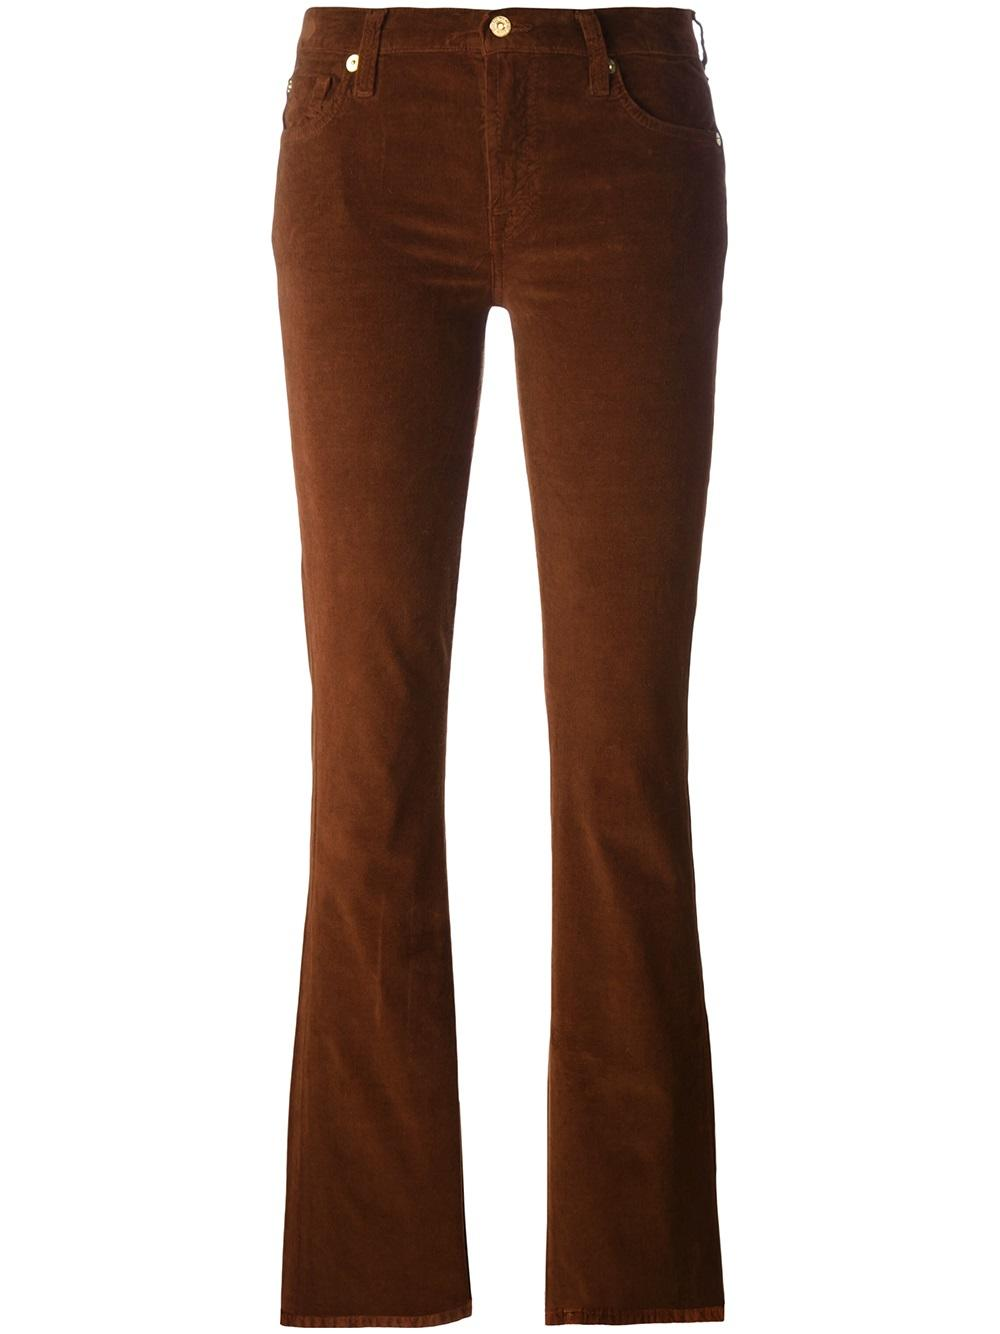 7 For All Mankind Calça flare corduroy